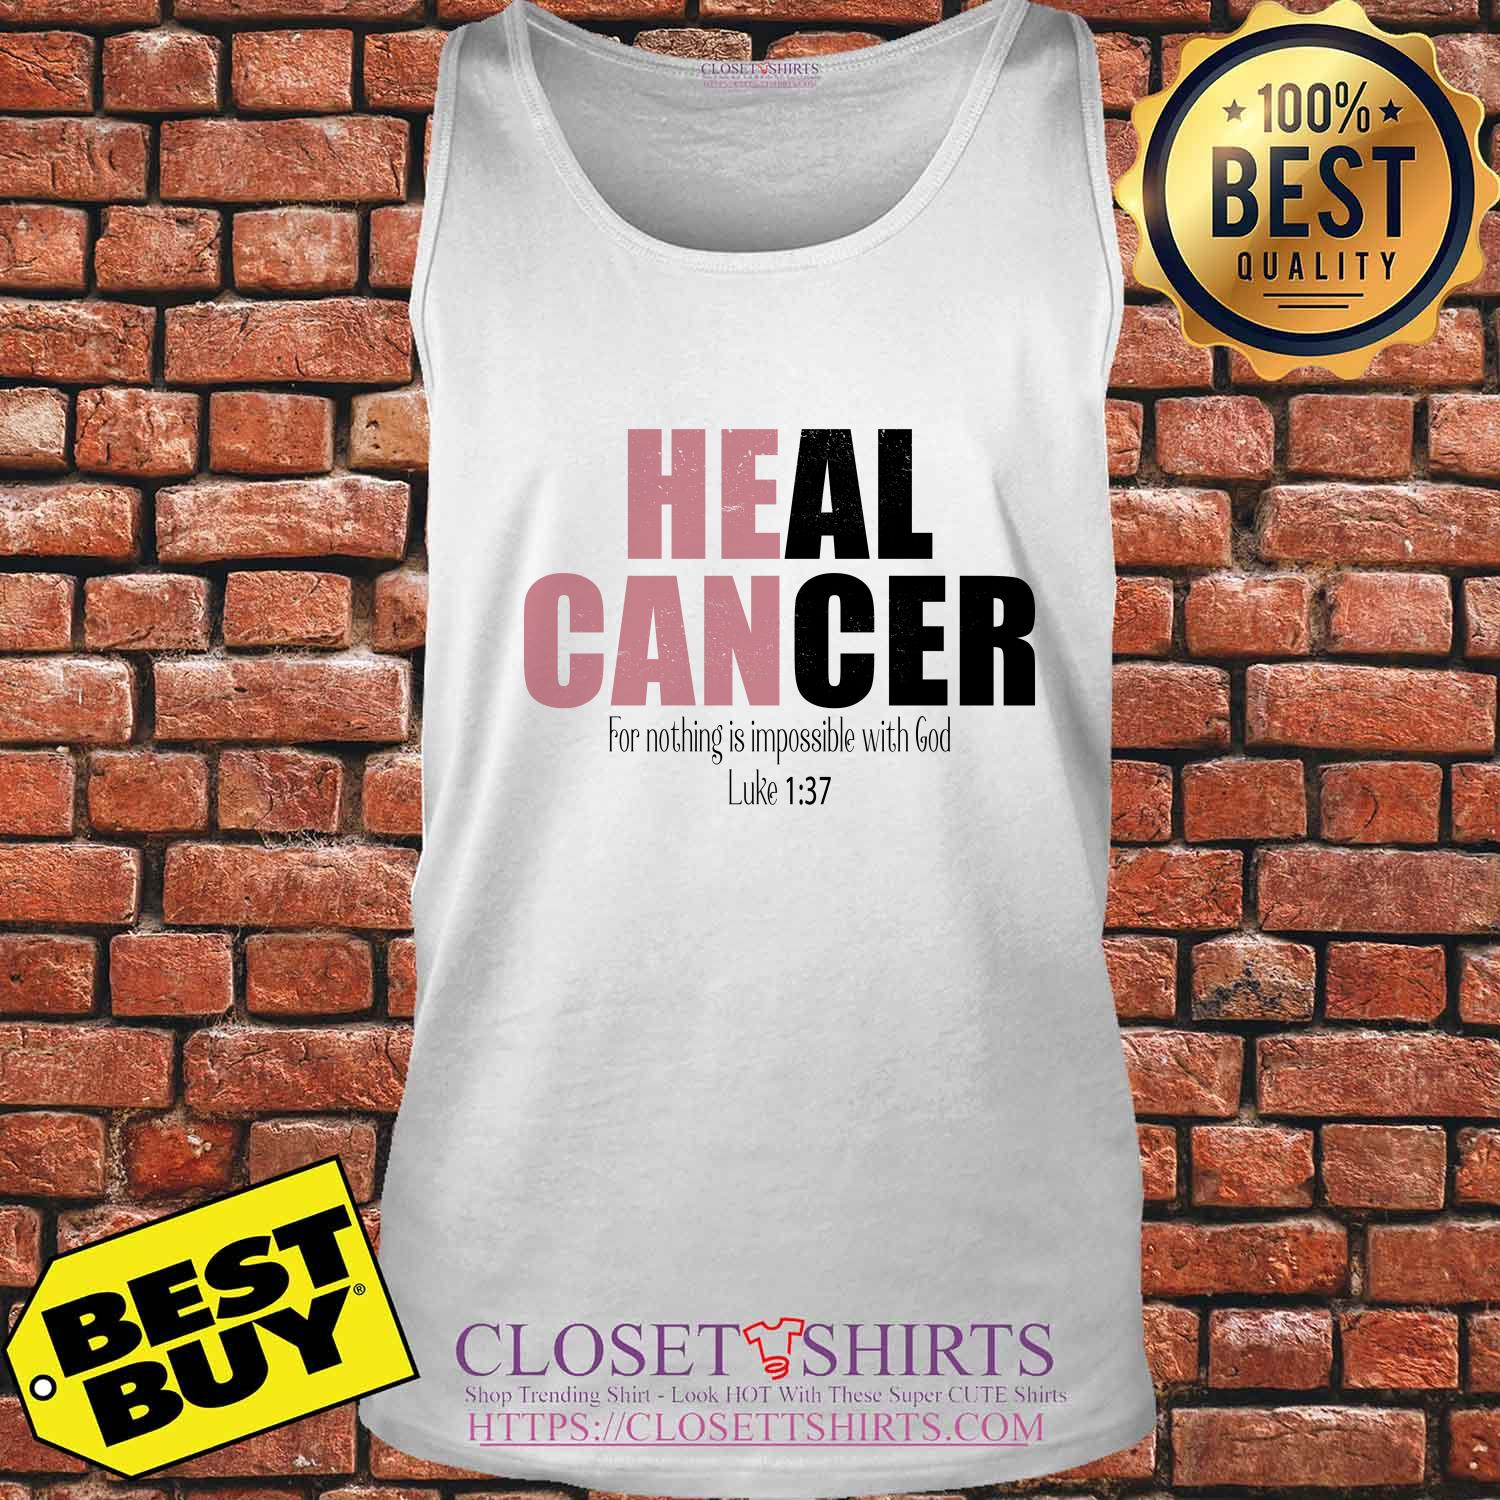 Heal Cancer For Nothing Is Impossible With God Luke 1:37 tank top